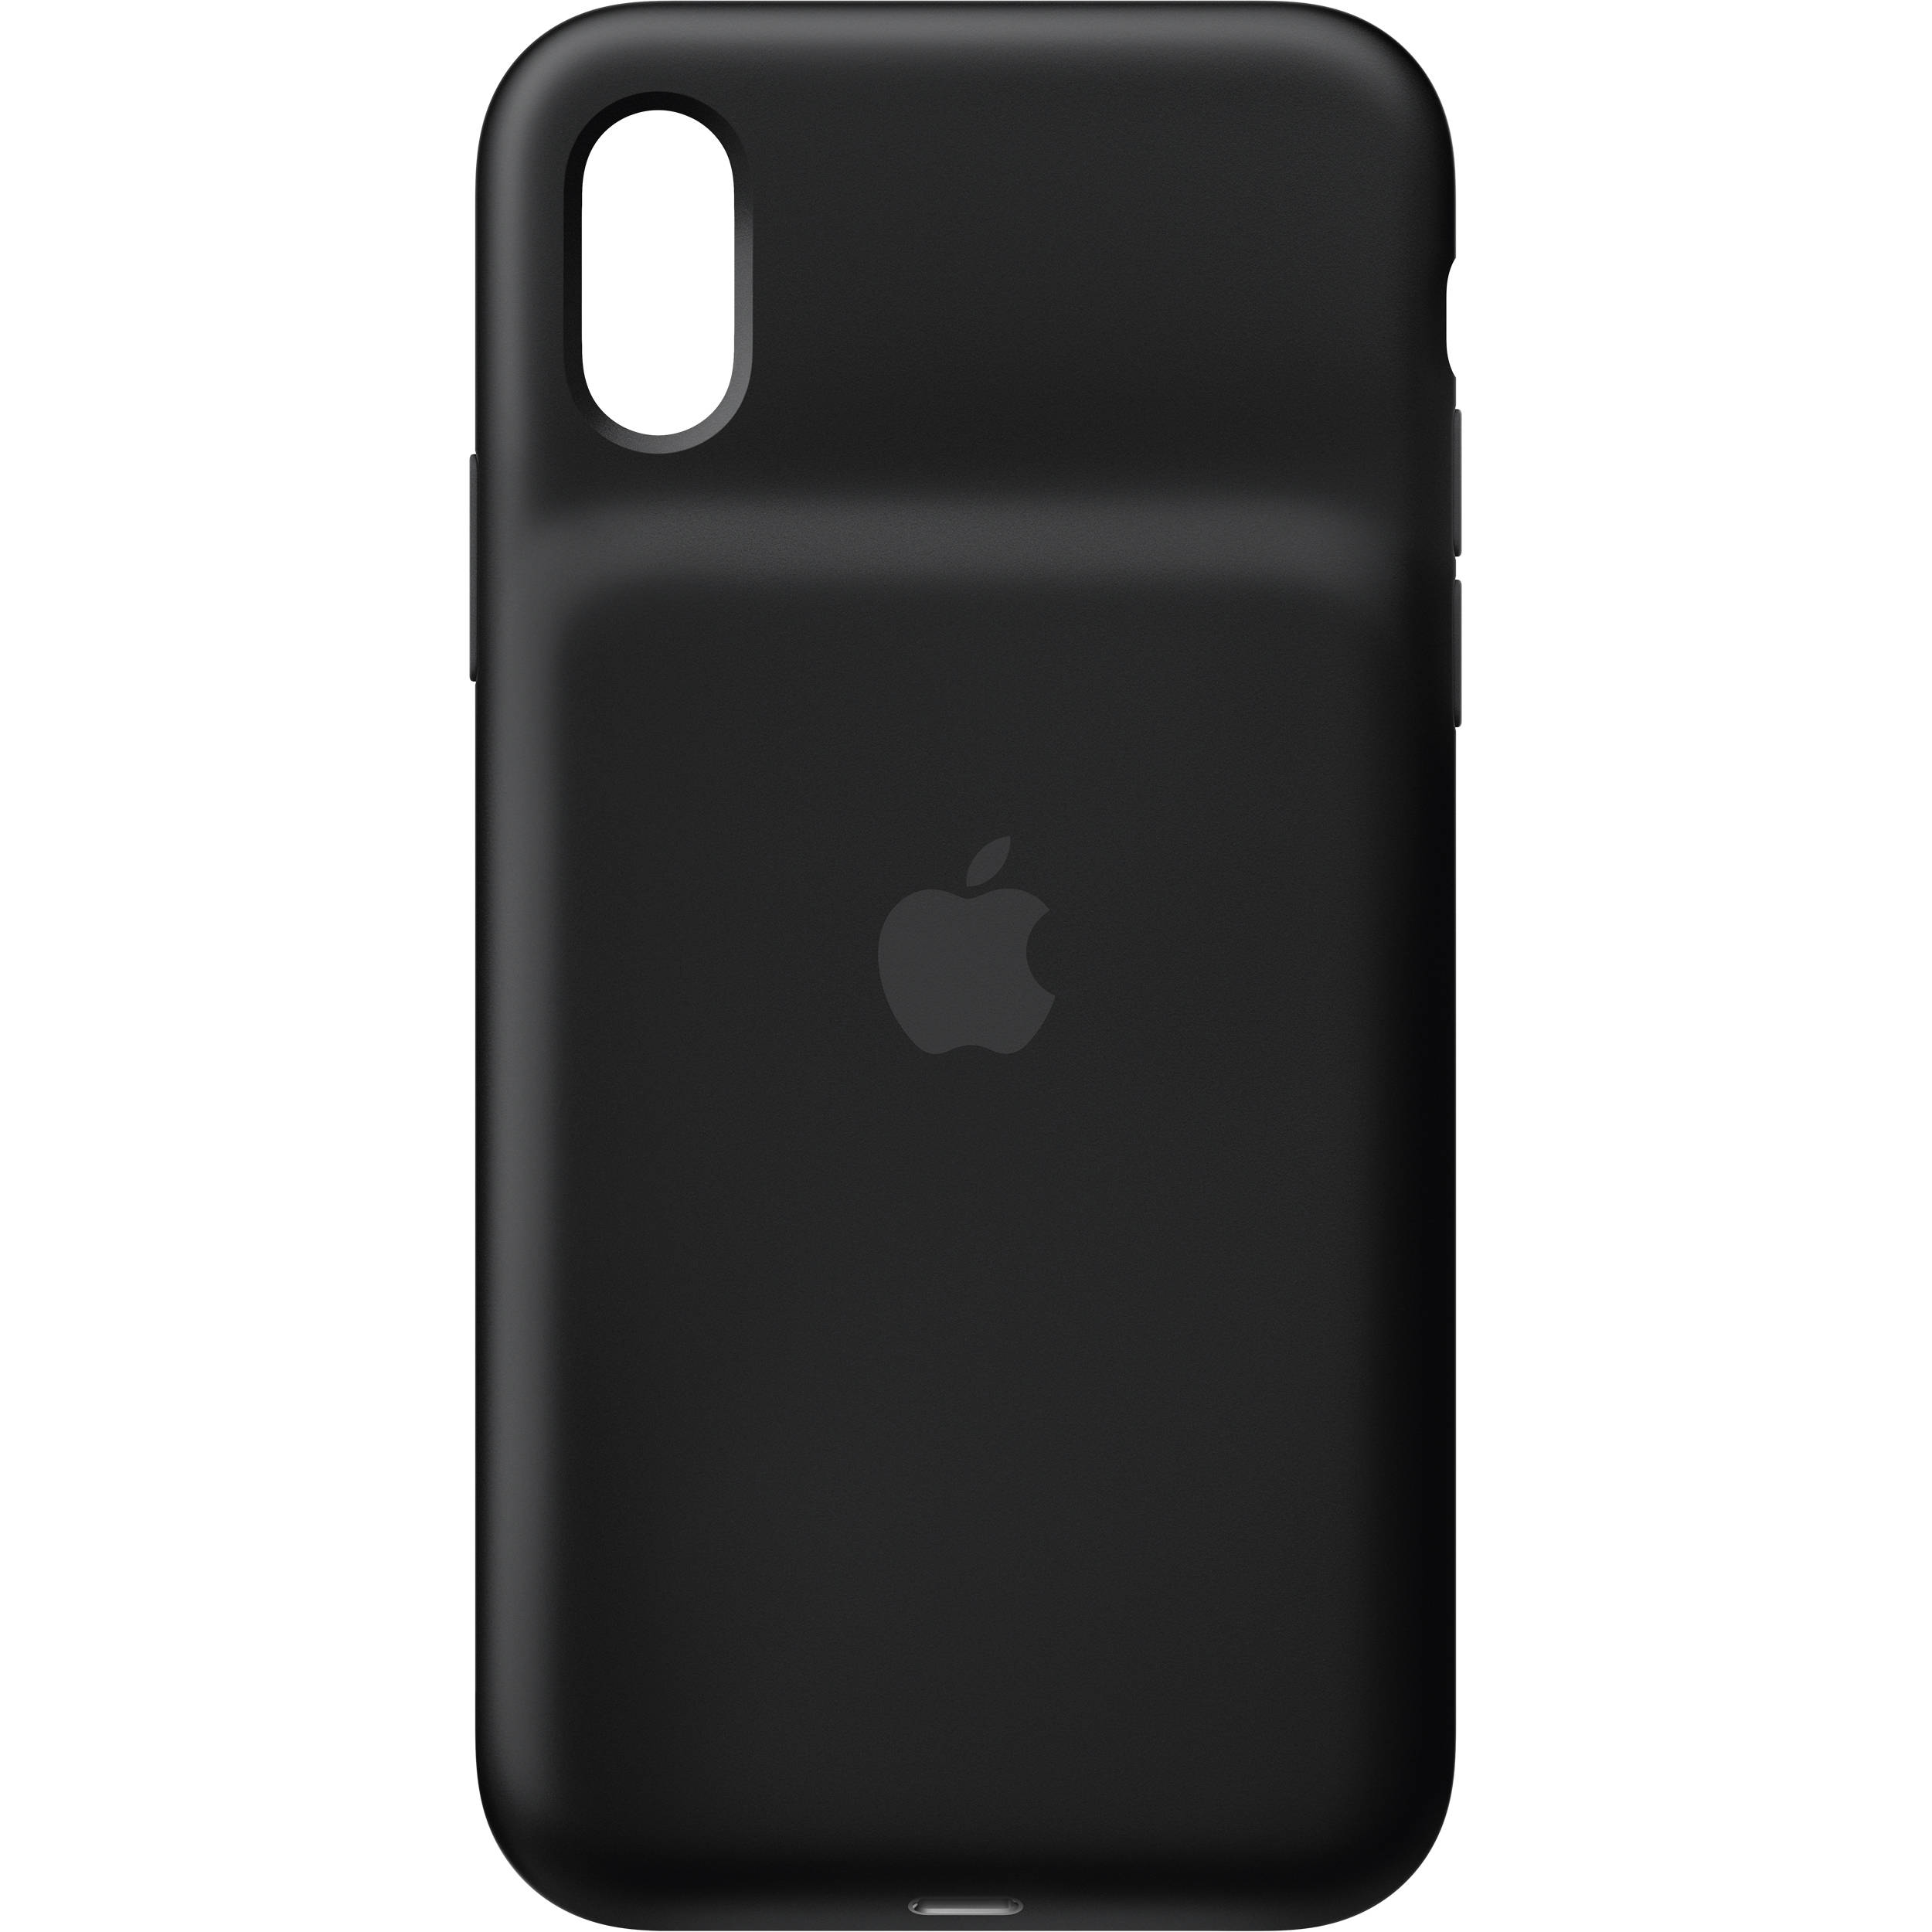 dba414993ba Apple iPhone XS Smart Battery Case (Black) MRXK2LL/A B&H Photo